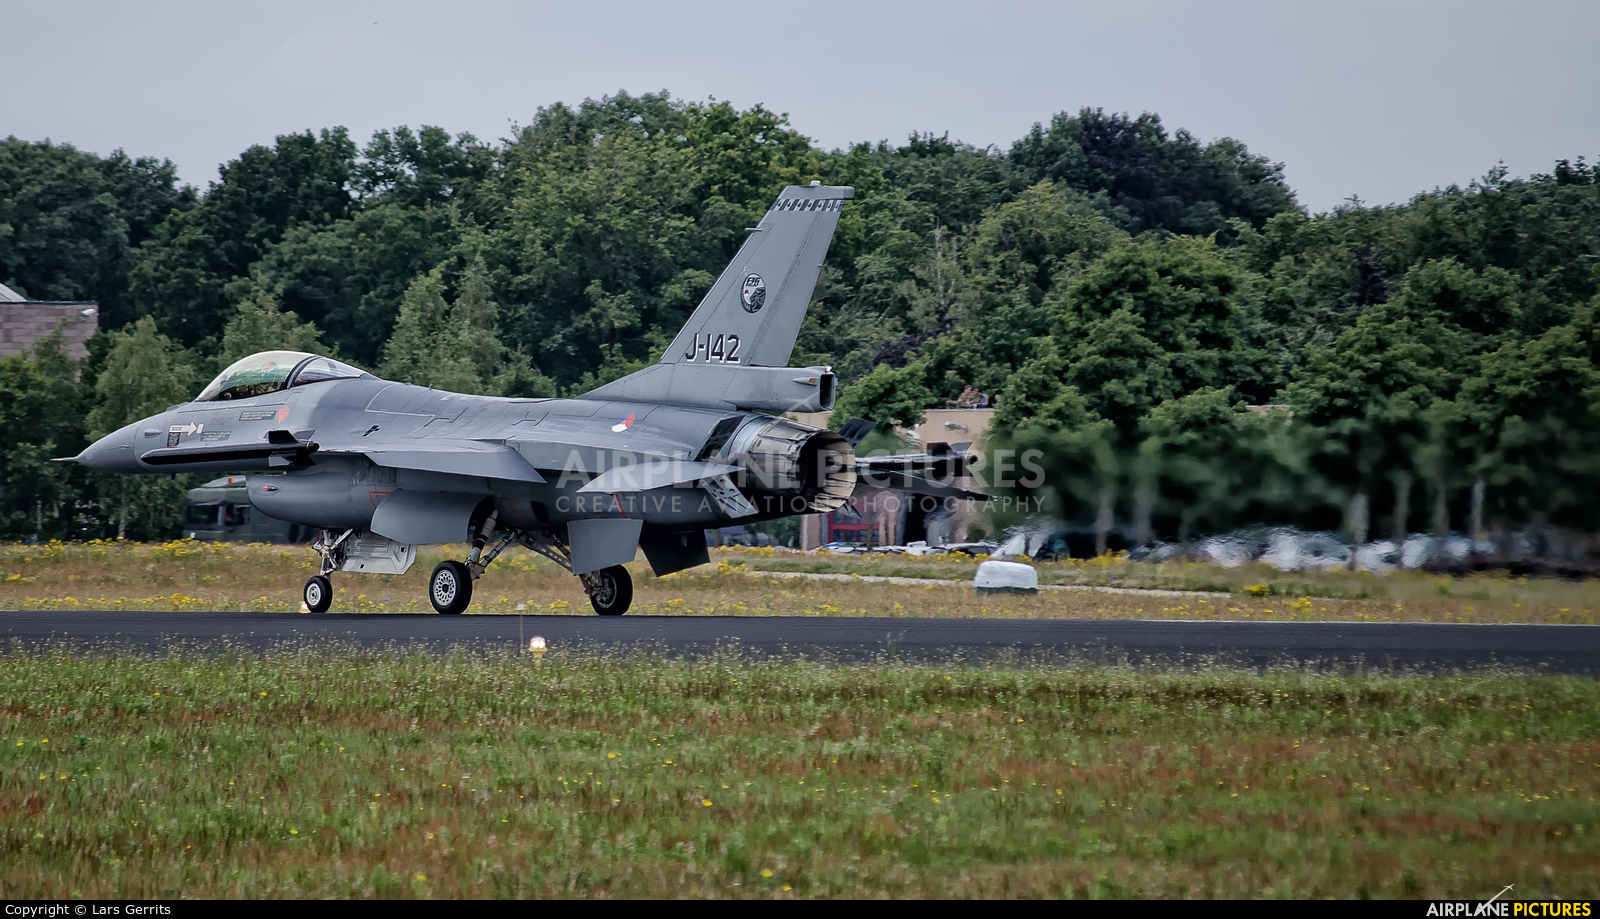 Netherlands - Air Force J-142 aircraft at Gilze-Rijen